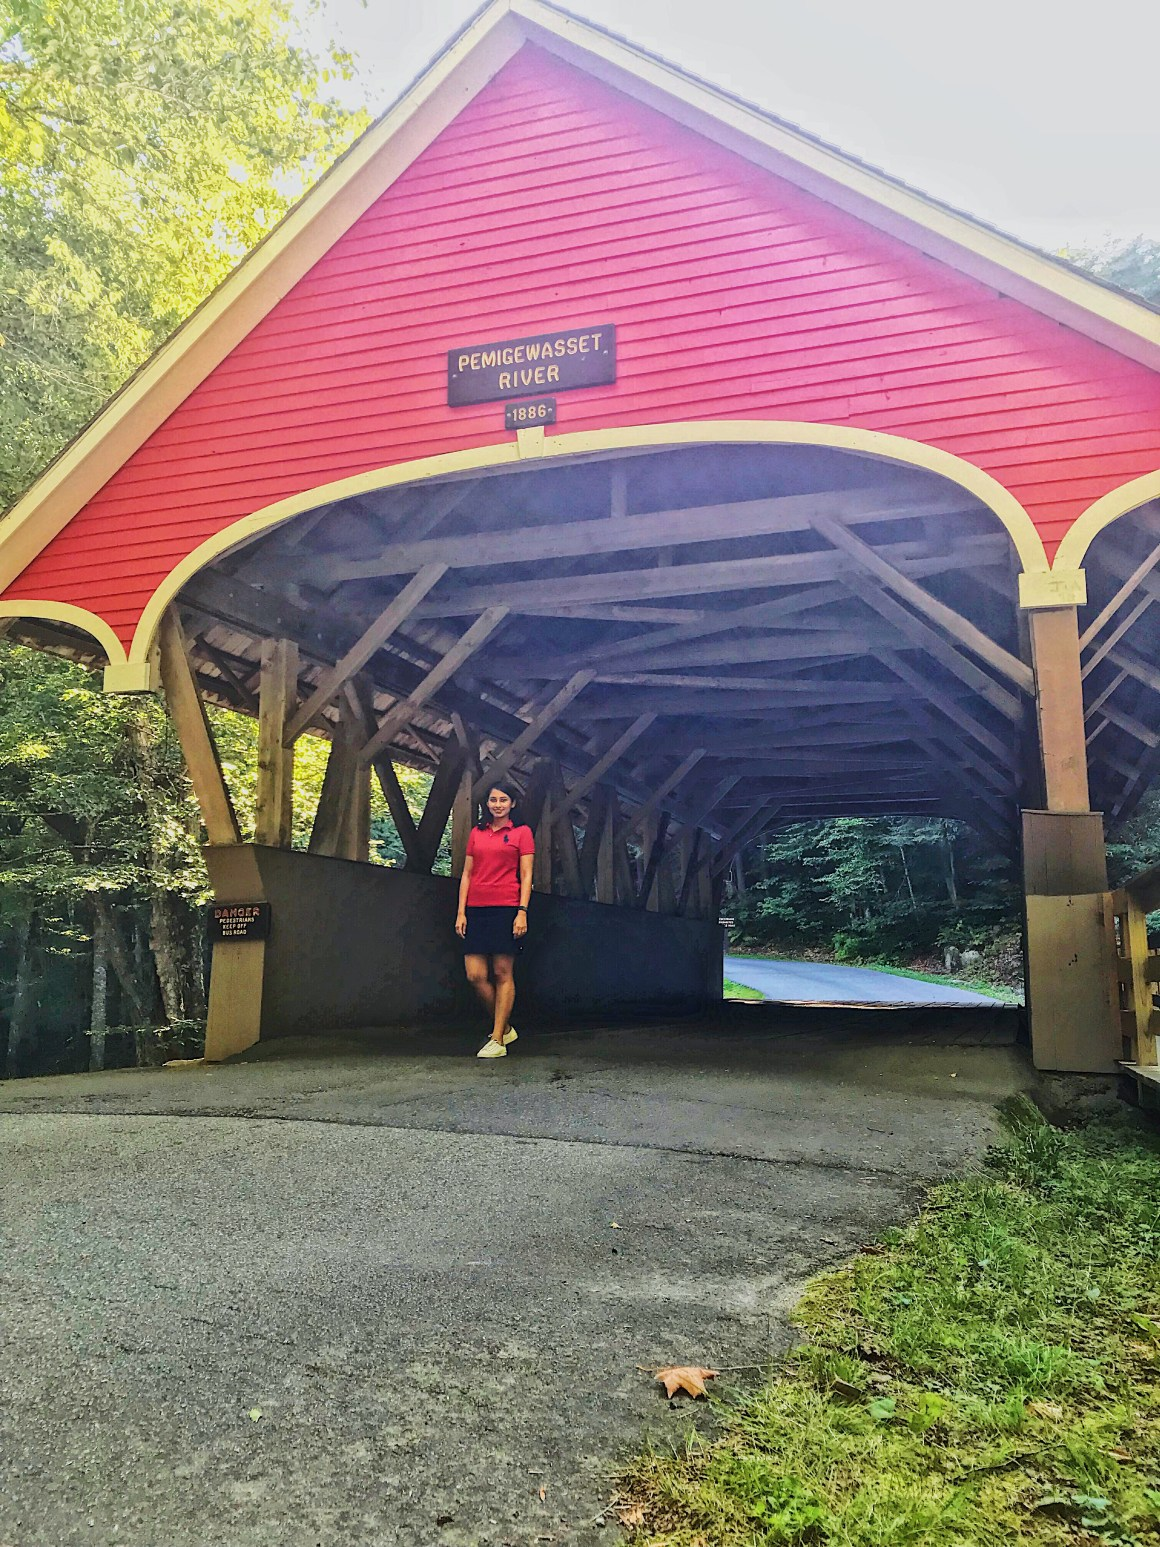 The White Mountains Travel Guide